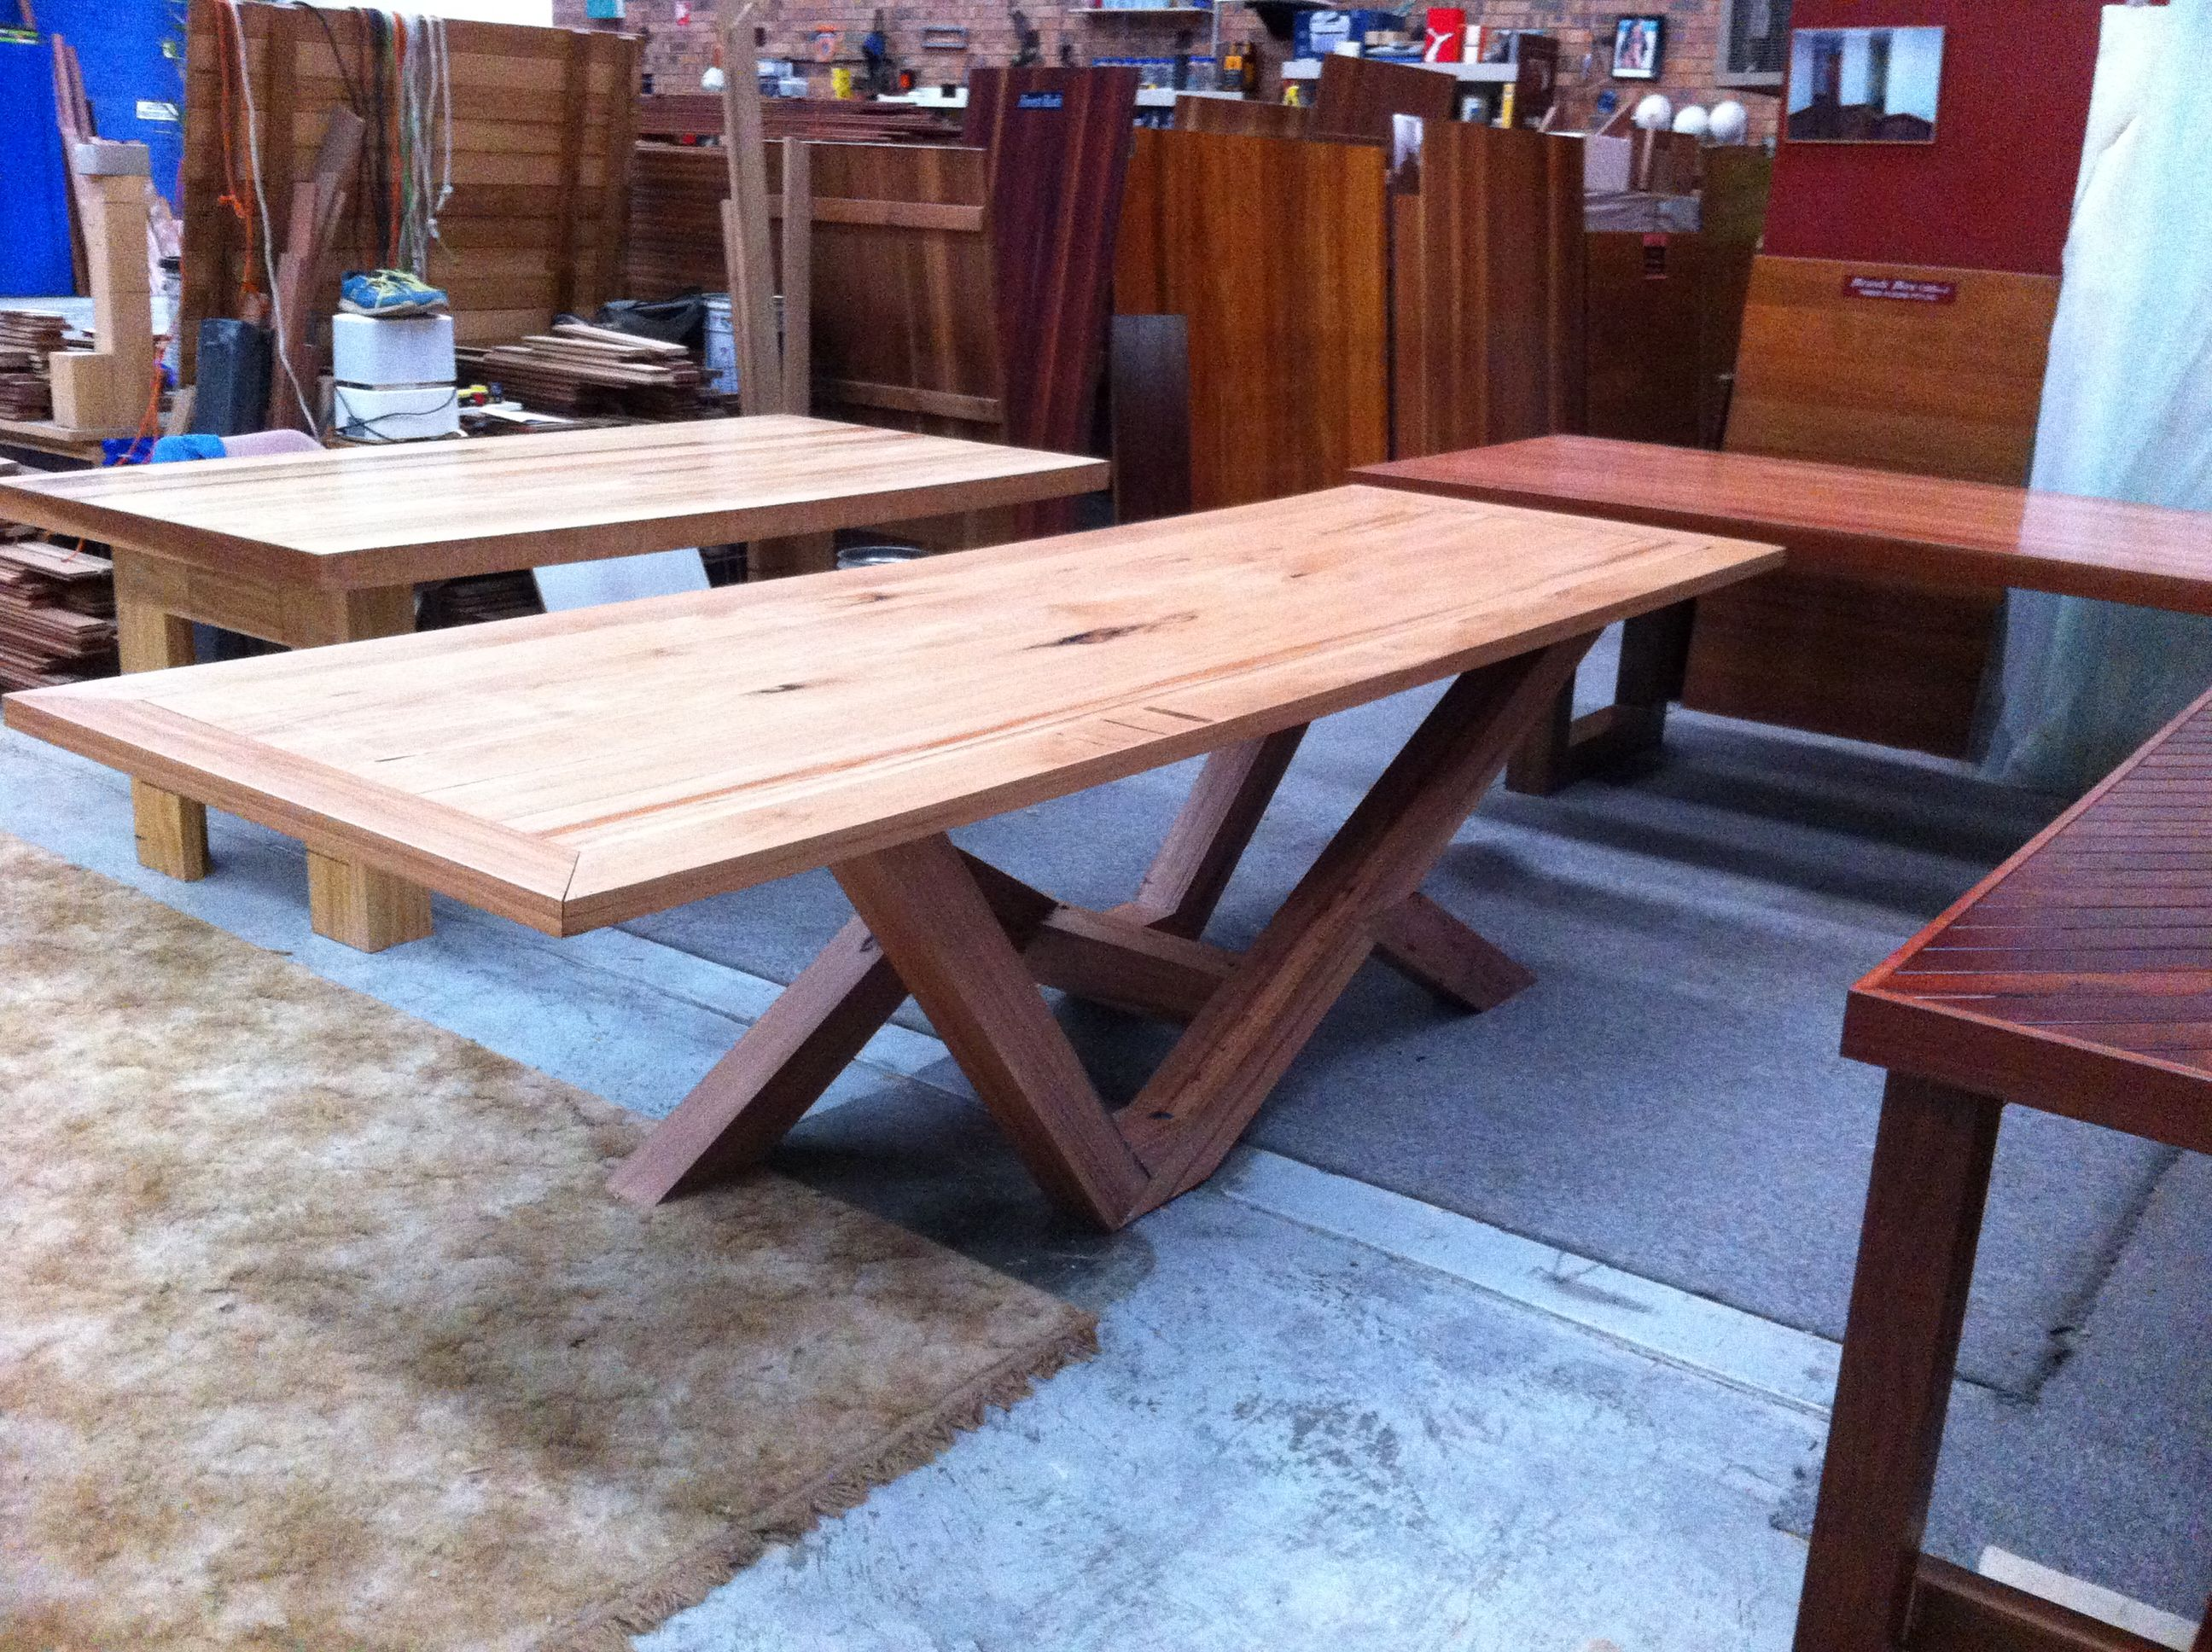 Solid Australian Hardwood tongue and groove timber flooring   custom built  dining table  made using. 34 best images about Custom Built furniture   Home Store on